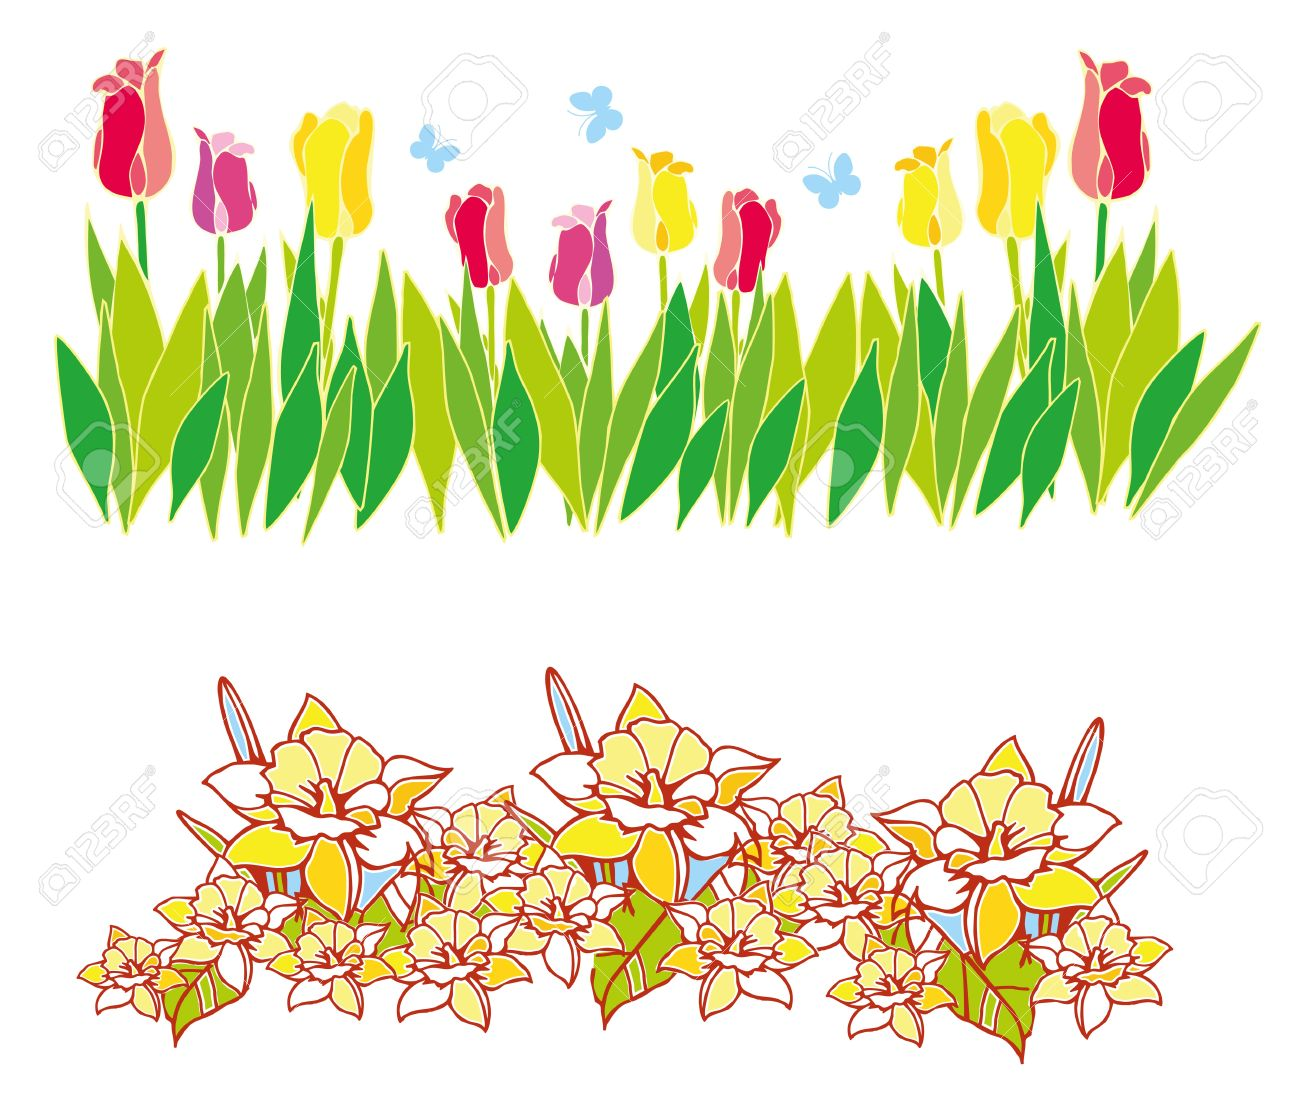 border of spring flowers with green leaves royalty free cliparts rh 123rf com free clipart spring images free clipart spring hampers uk